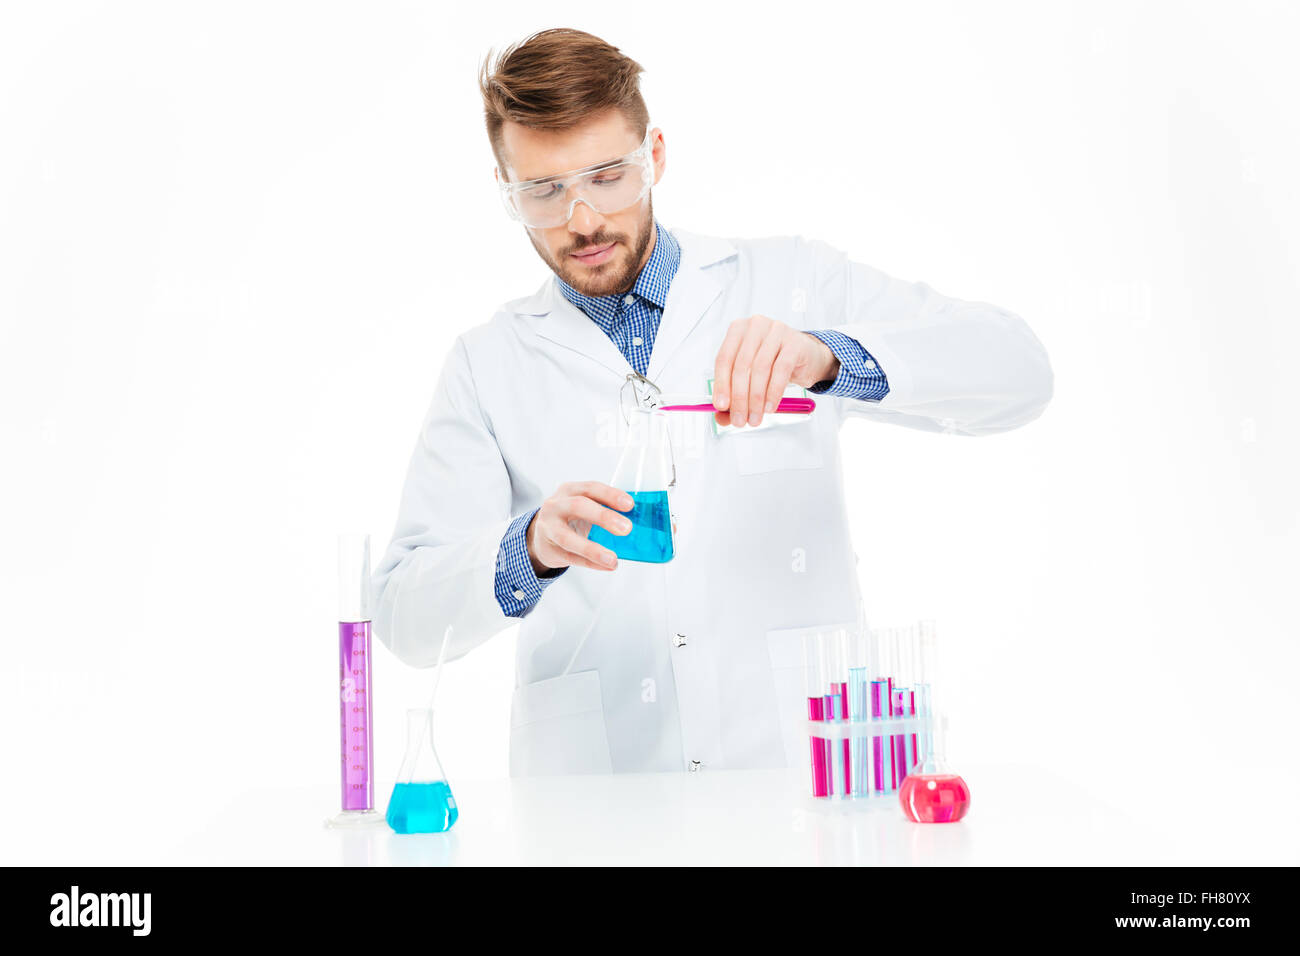 Man pouring chemicals isolated on a white background - Stock Image